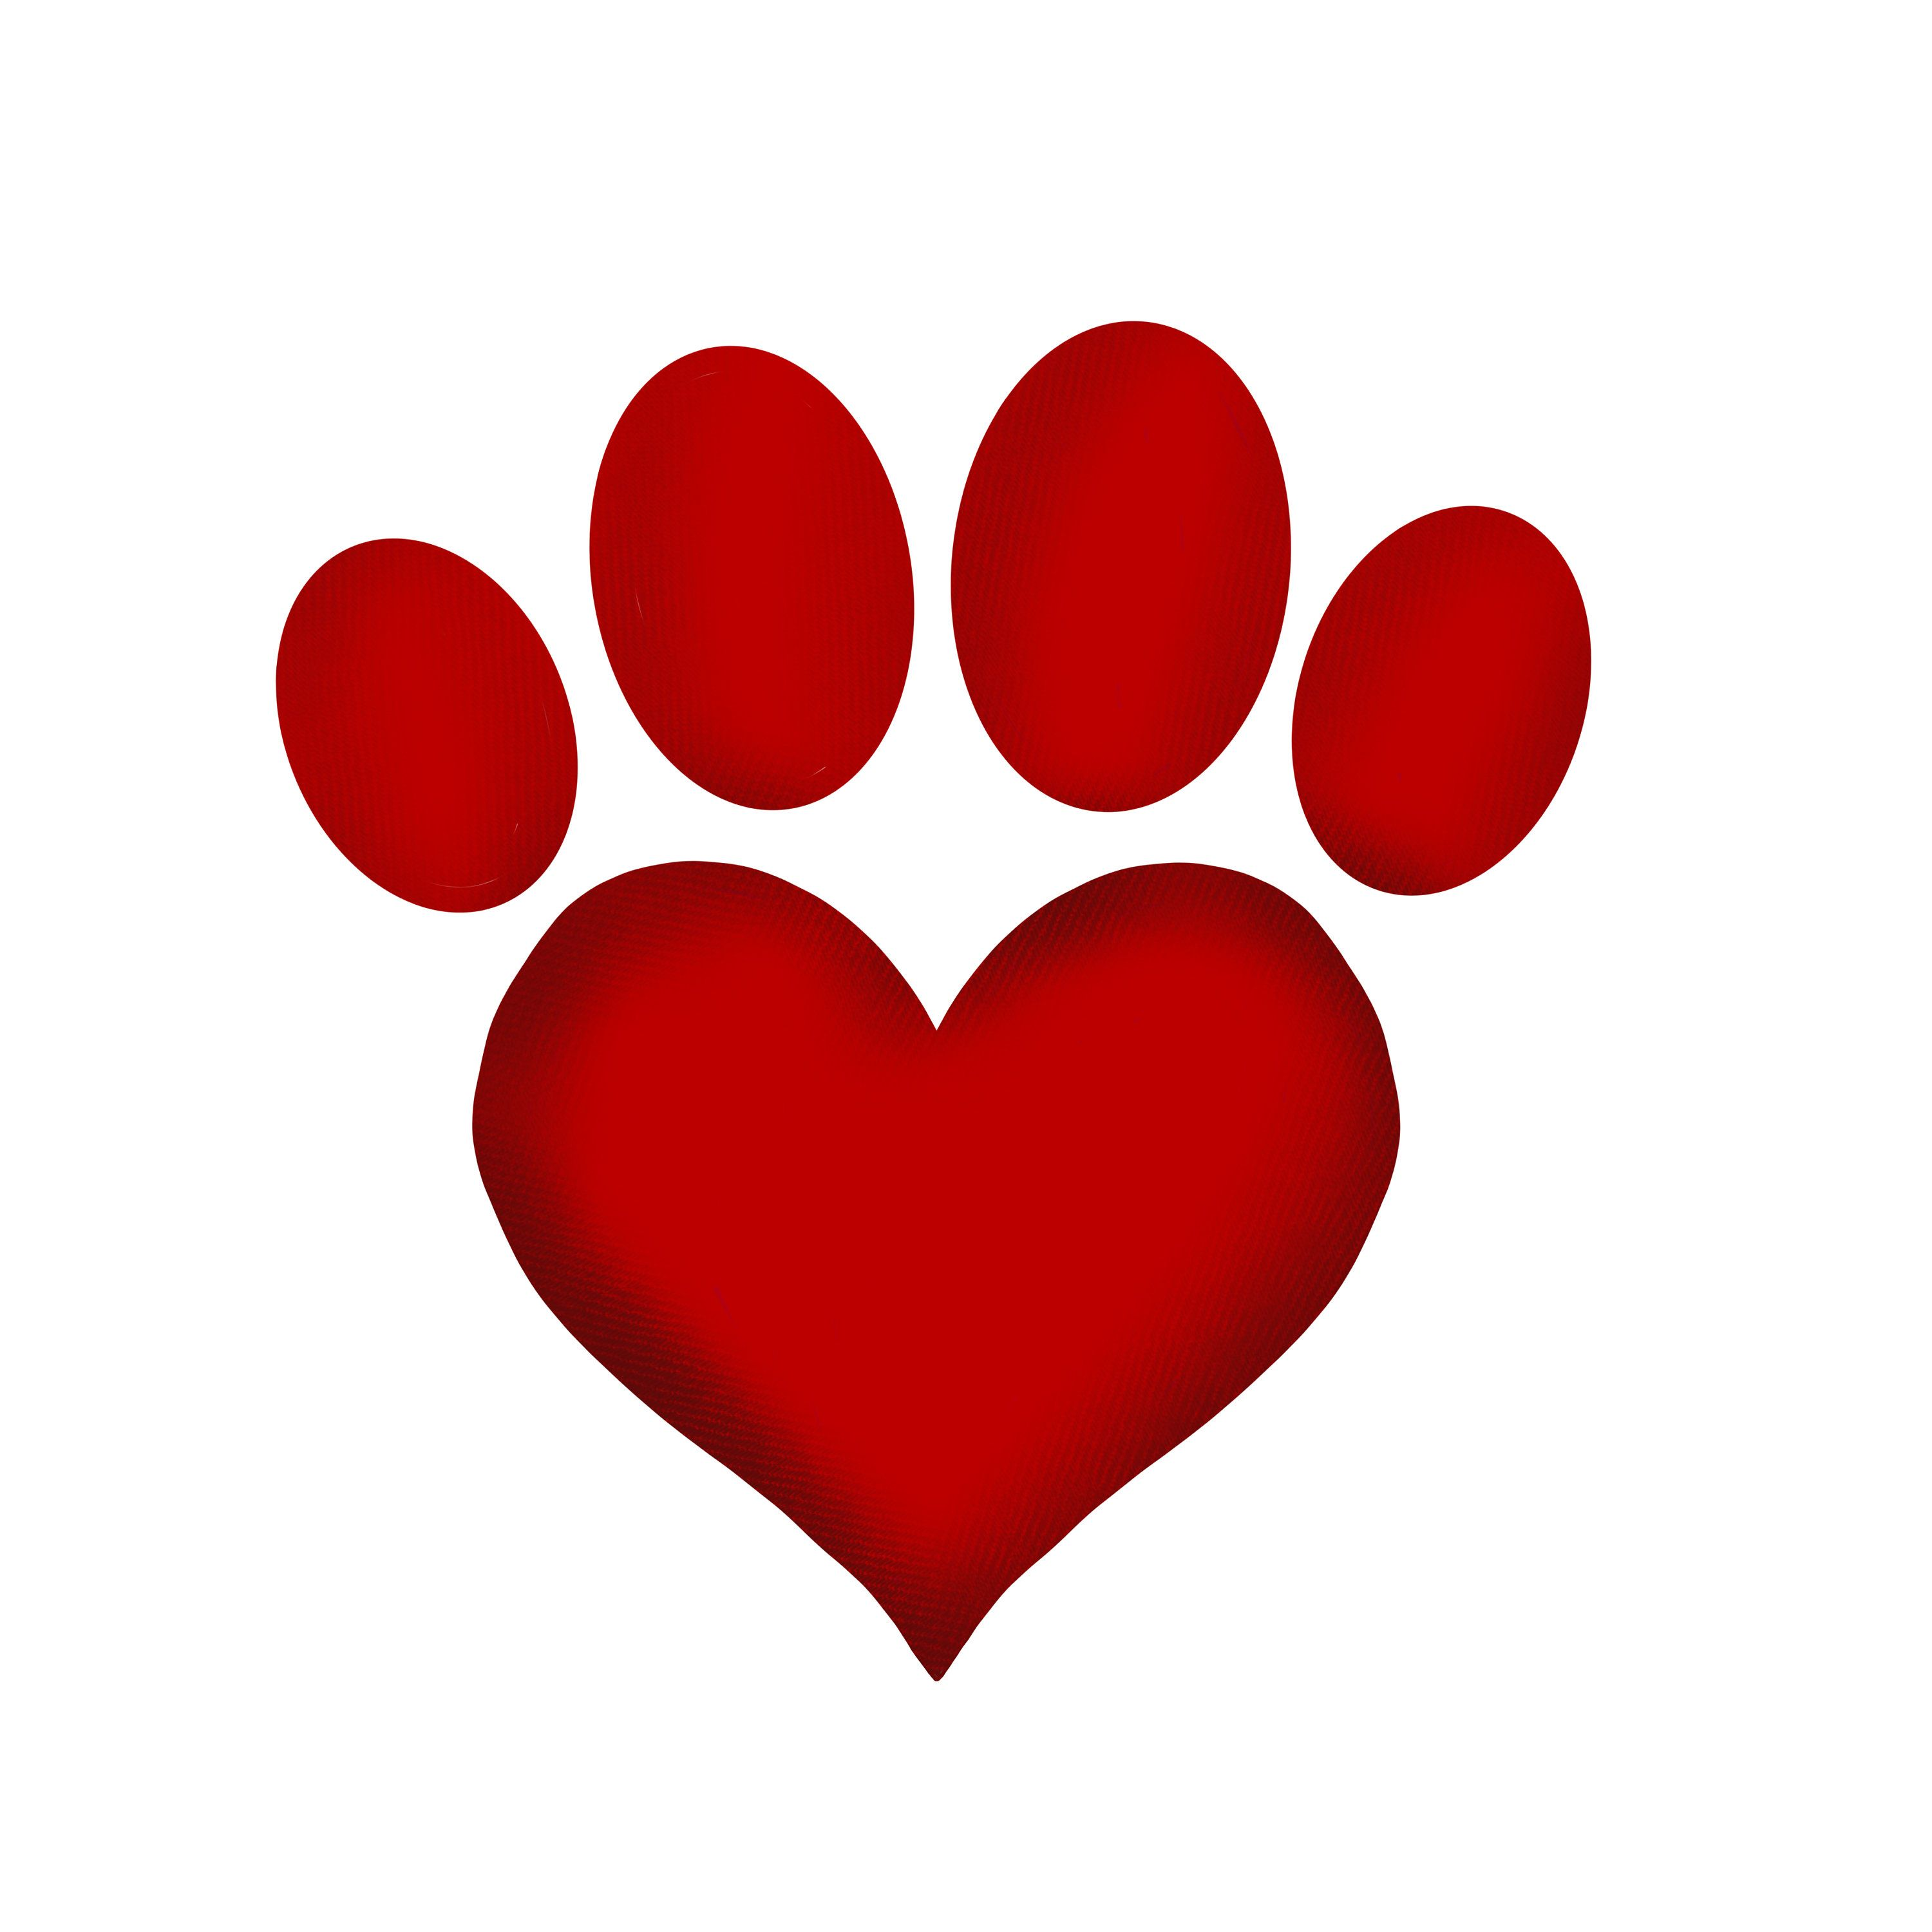 Dog Paw Print Png Heart Dog Paw Digital 300 Dpi Commercial Etsy In 2021 Valentines Day Drawing Paw Print Crafts Valentines Wallpaper